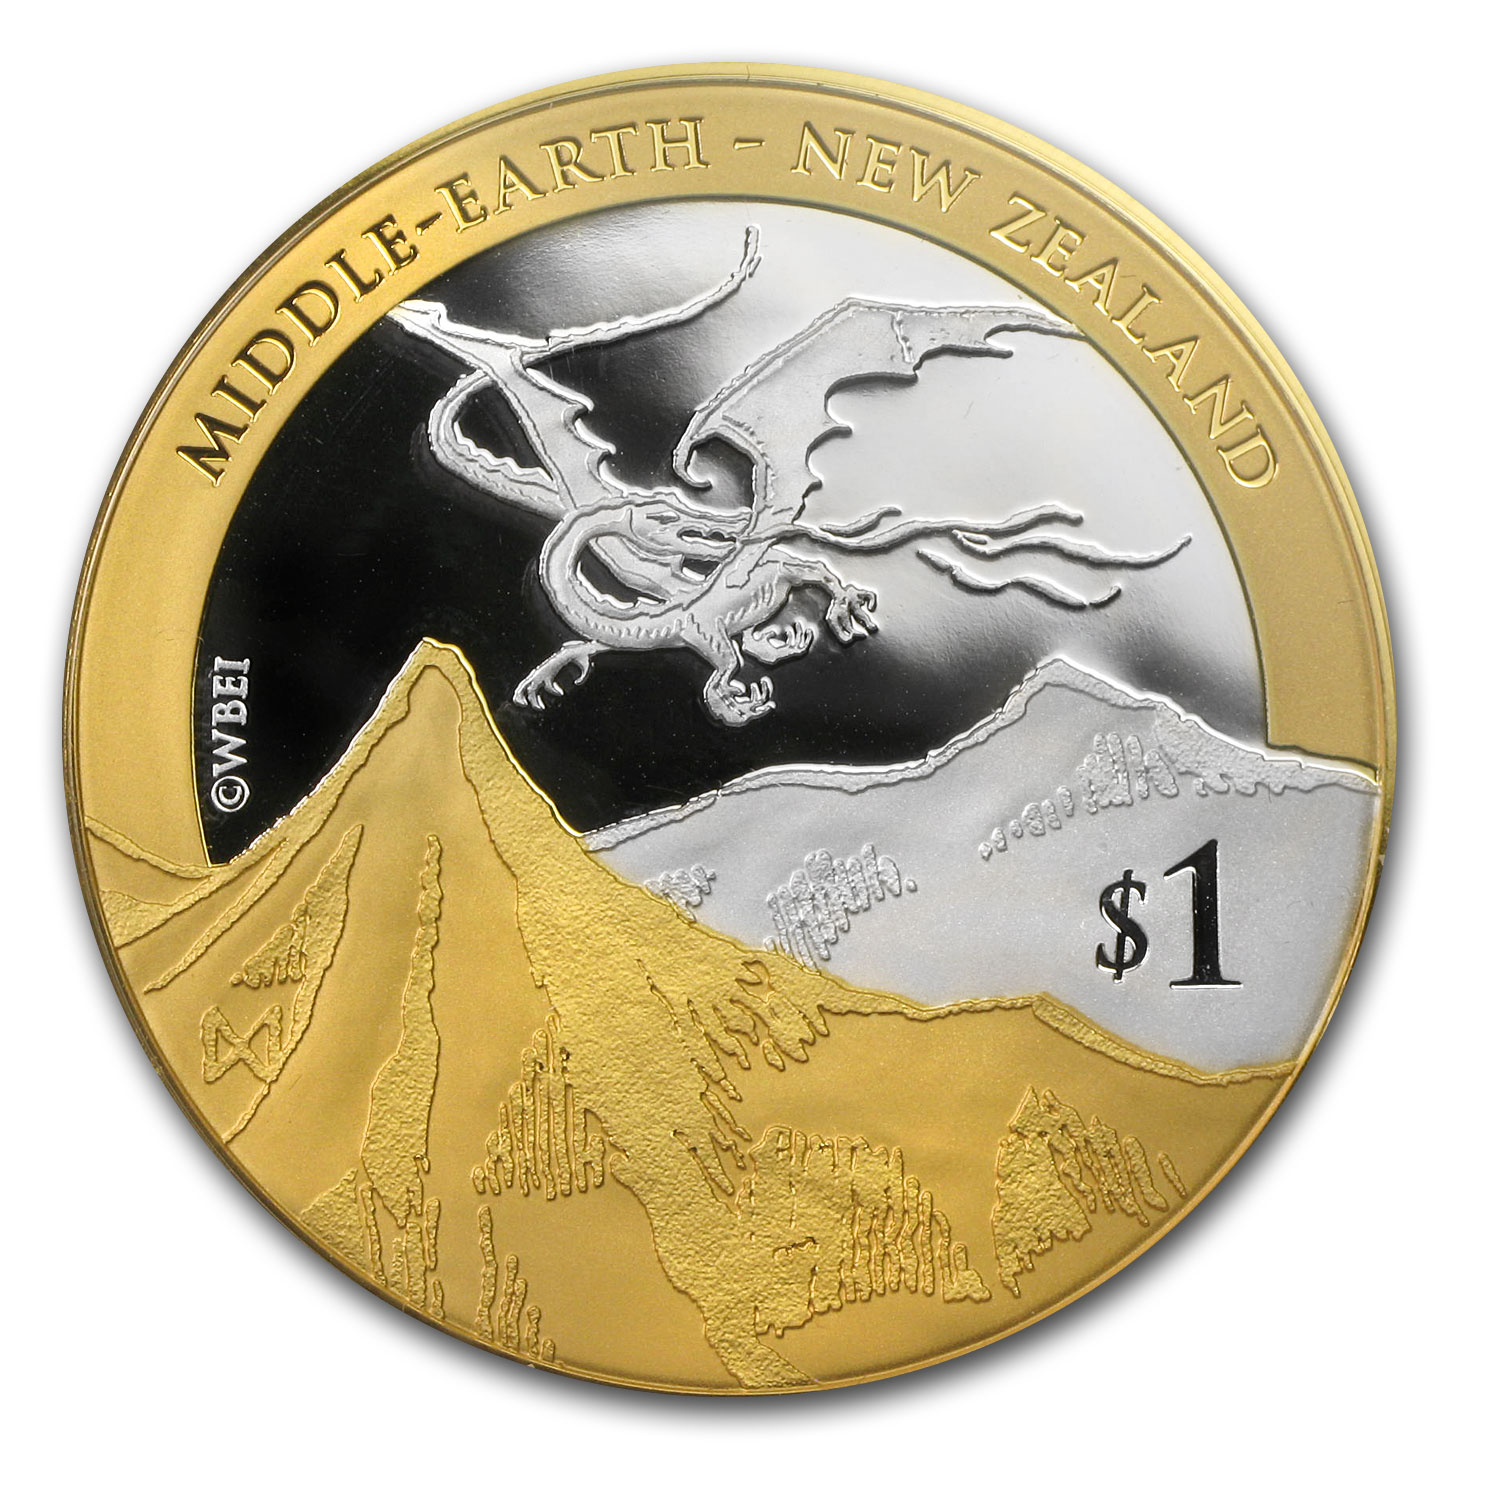 2014 1 oz Silver New Zealand $1 Desolation of Smaug (Gold Plated)